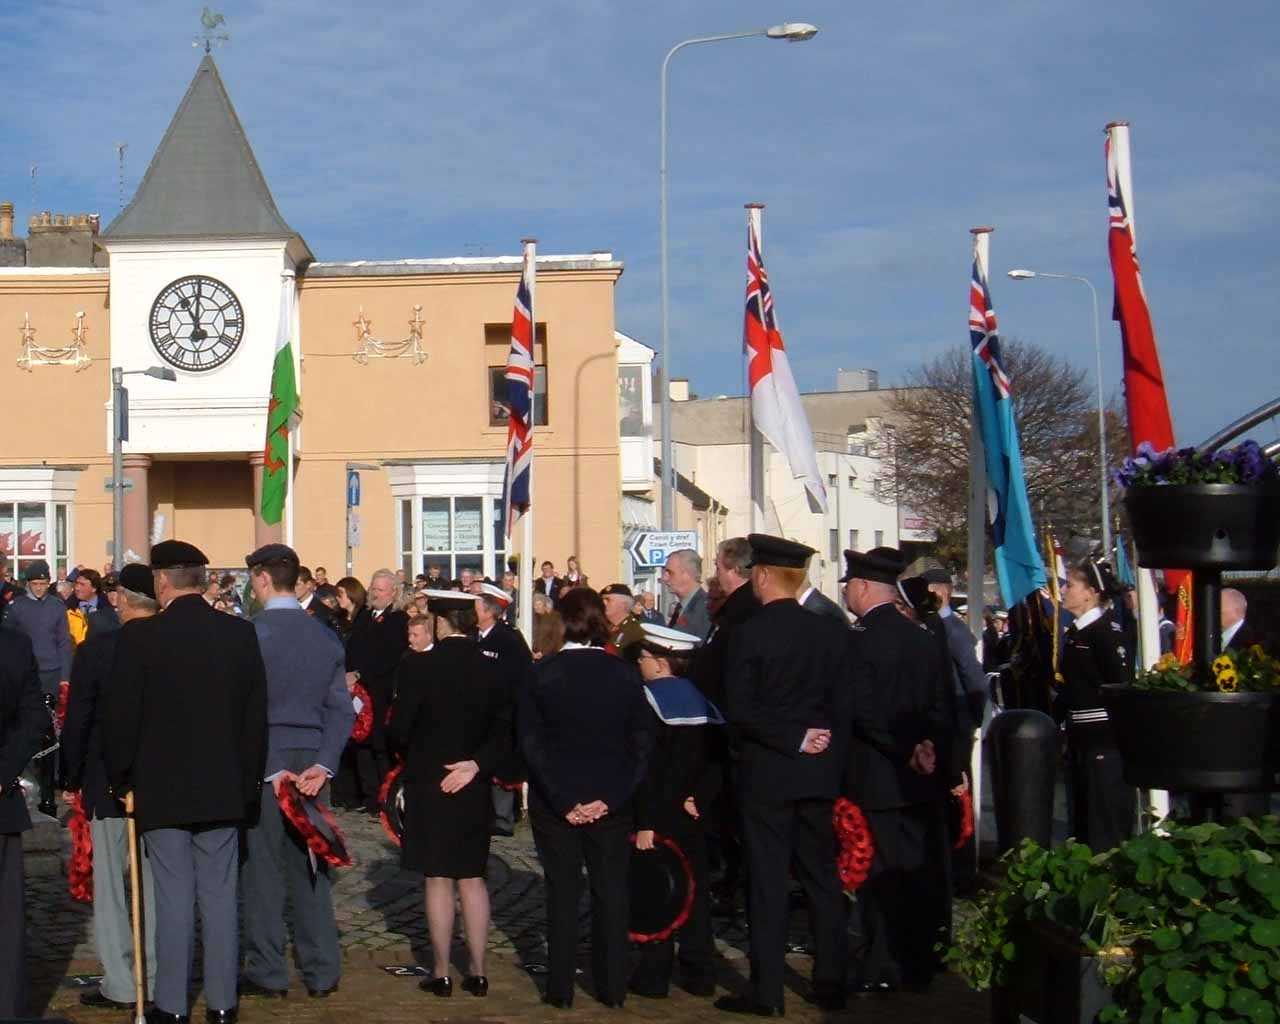 Anglesey, Holyhead, Remembrance Sunday 2006 - Fire Service, Sea Cadets and Air Training Corps